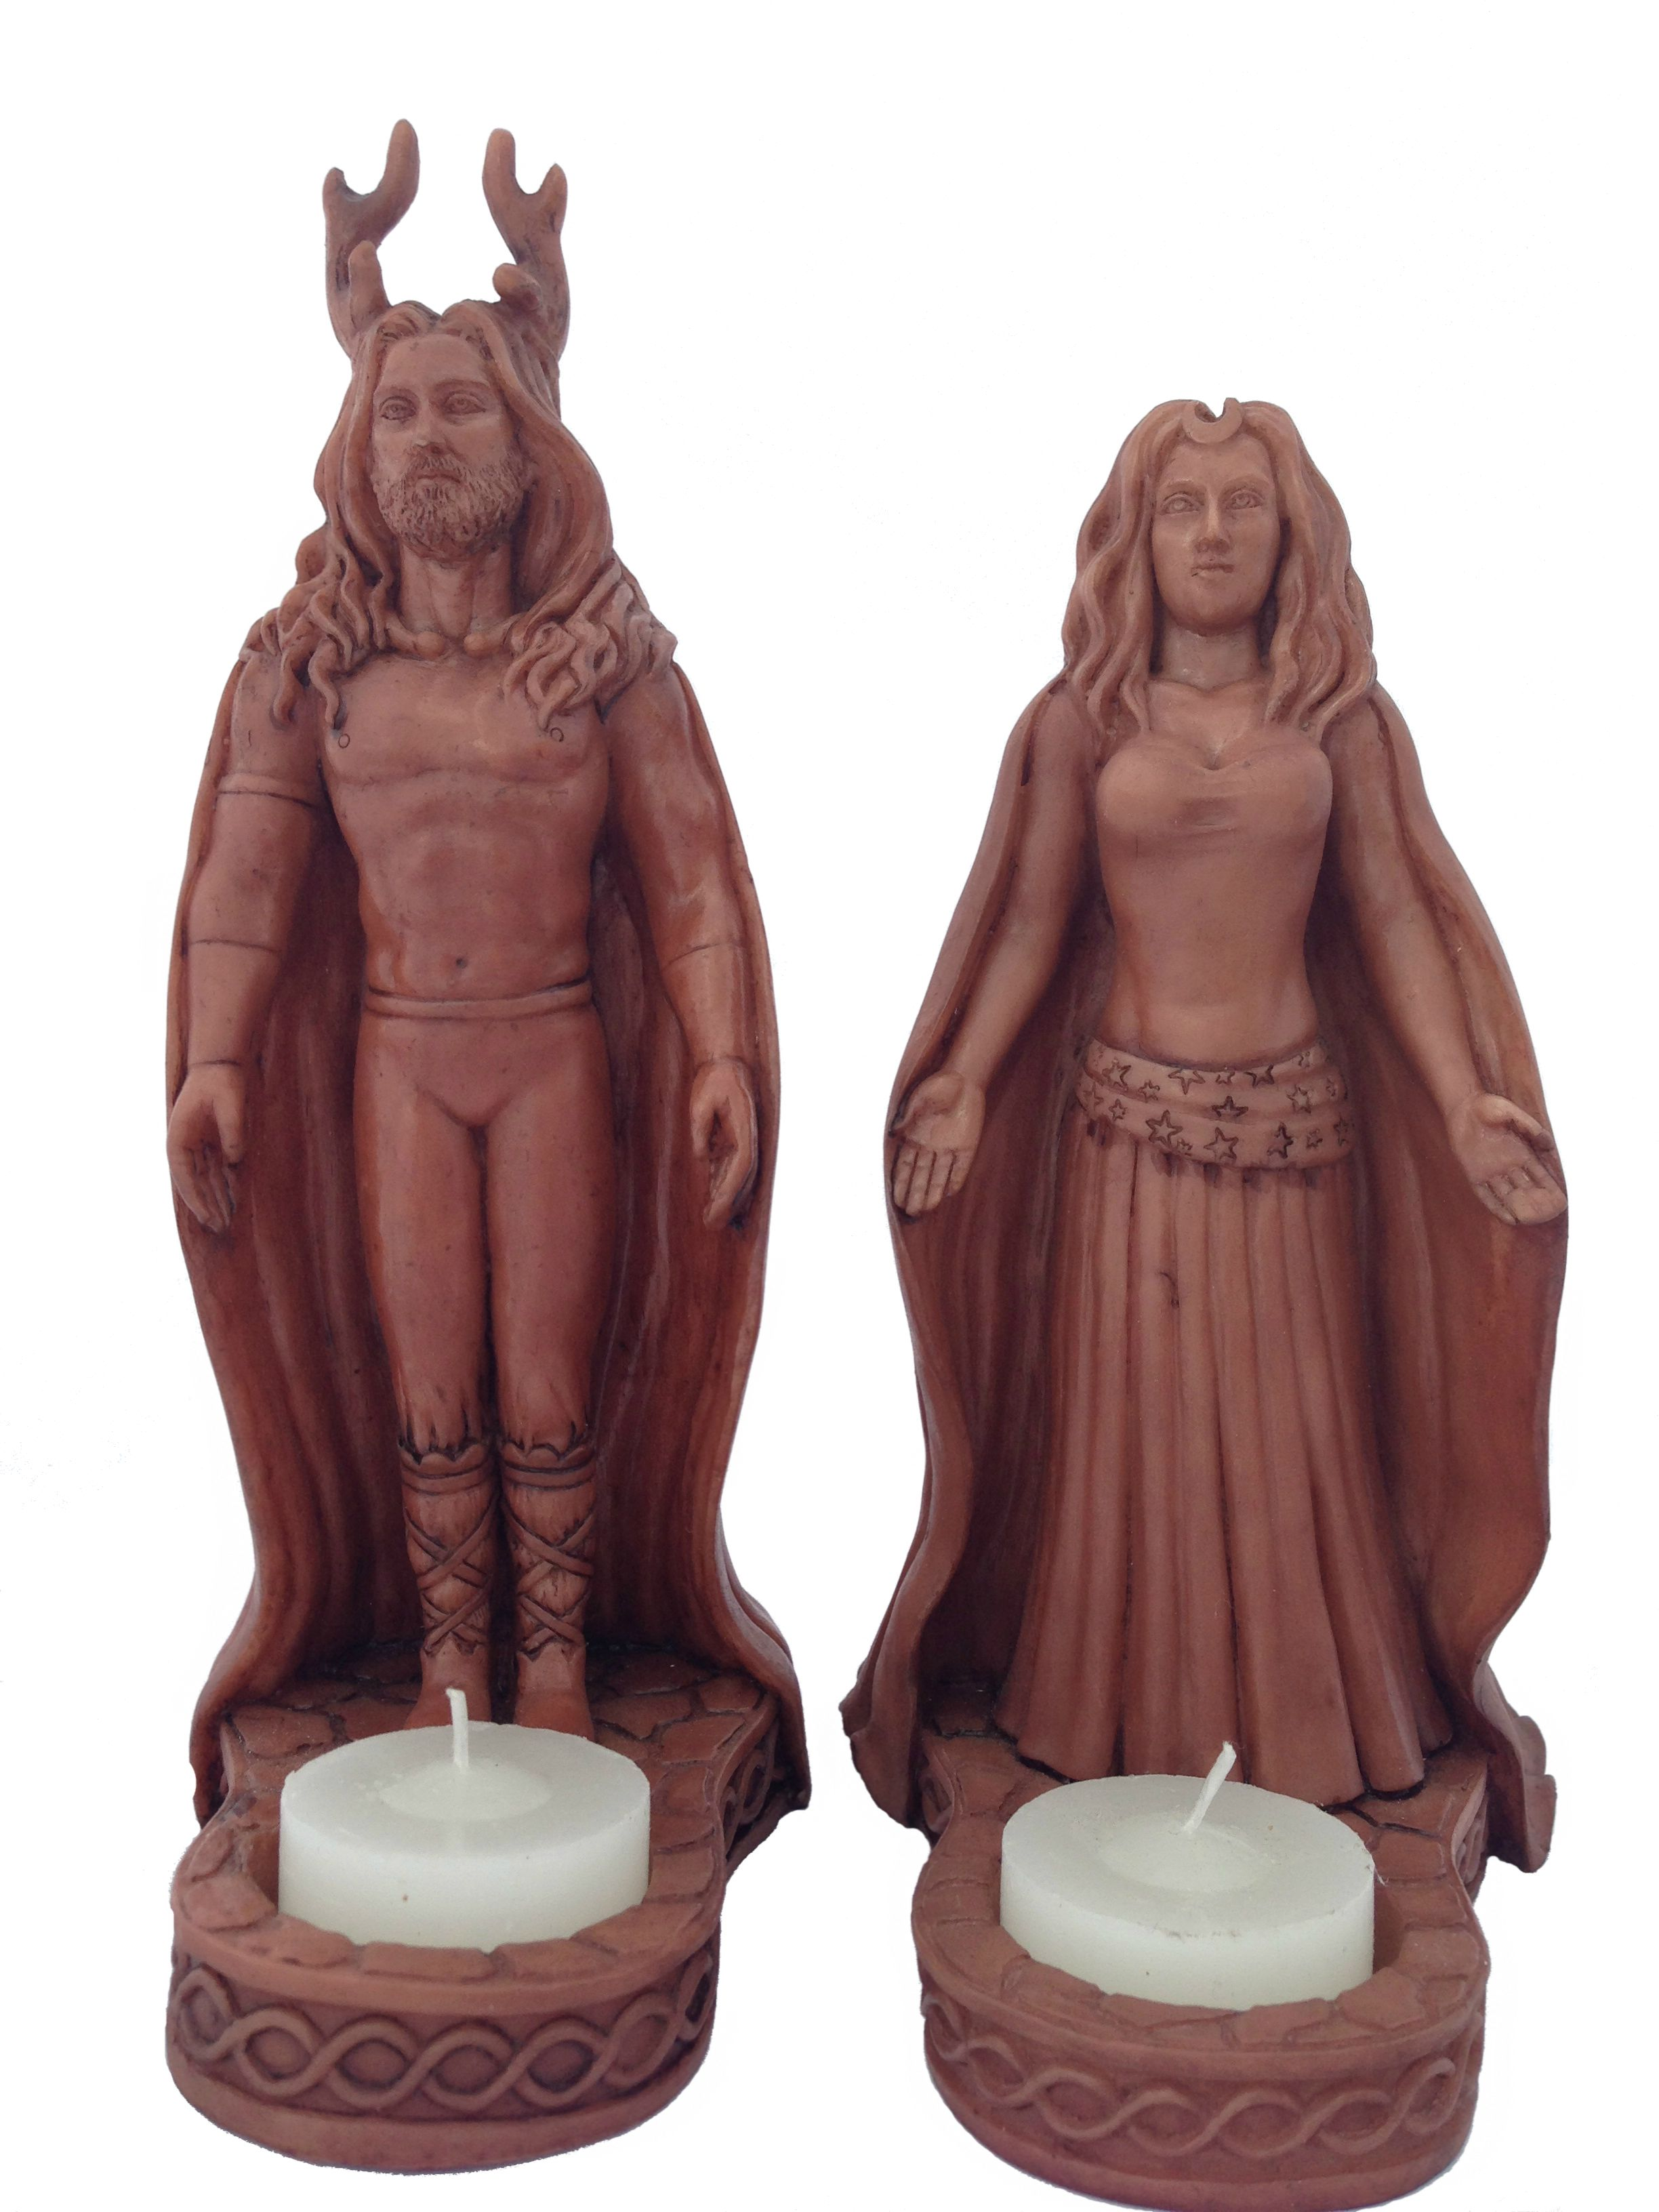 Lord Lady Horned God Moon Goddess Altar Statuary Candle Holder Set This Set Comes With 1